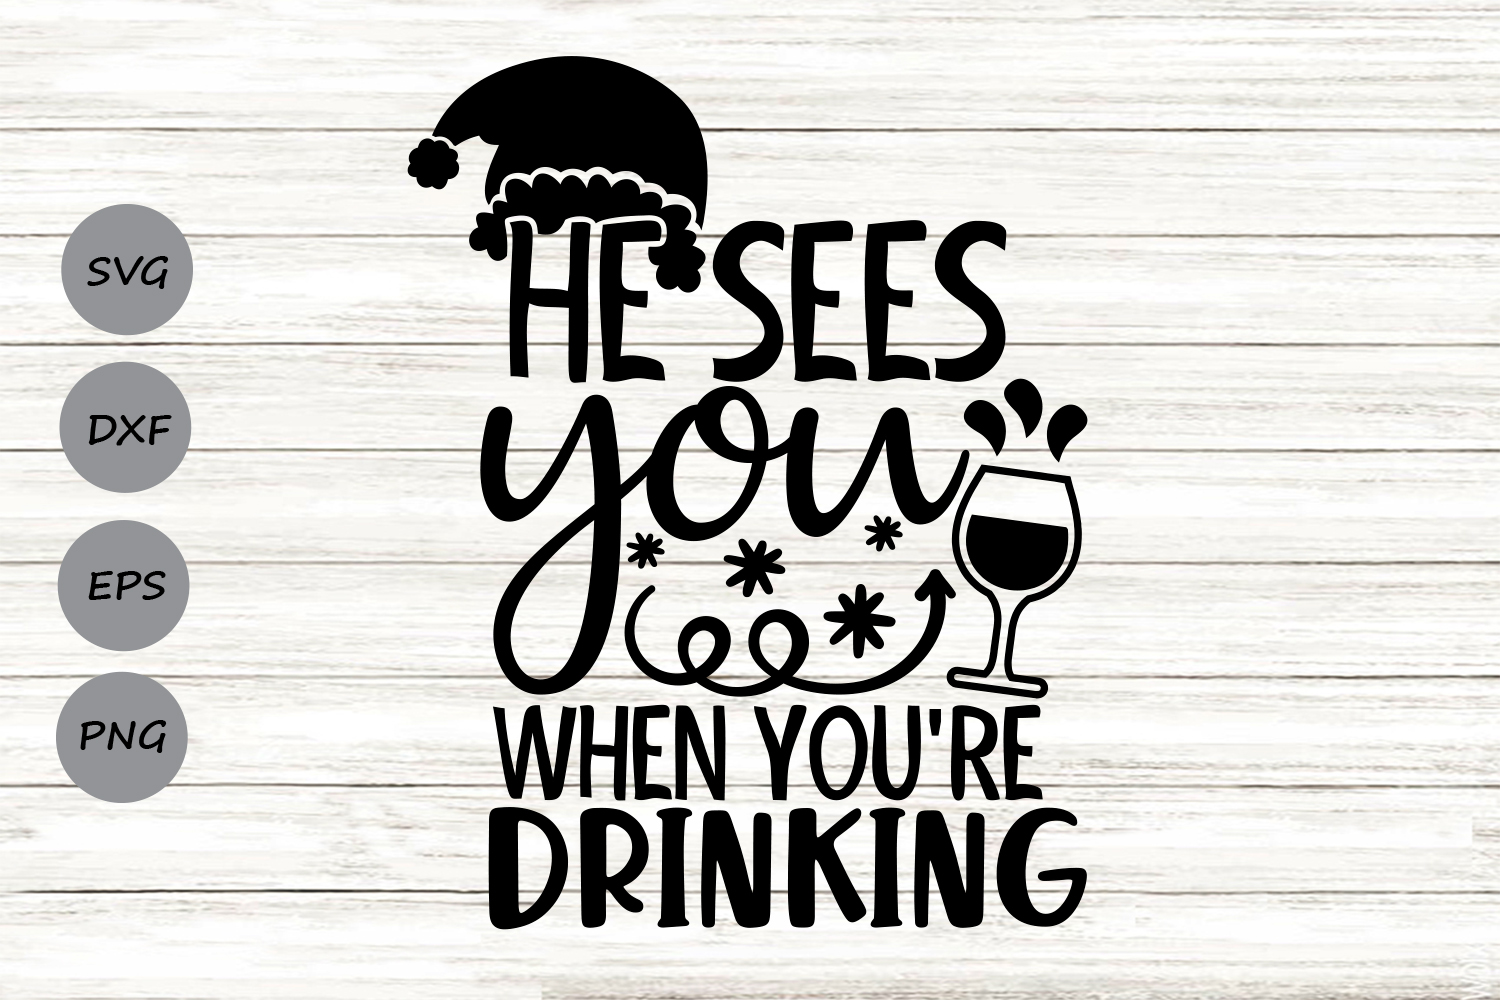 He Sees You When You Re Drinking Svg Graphic By Cosmosfineart Creative Fabrica